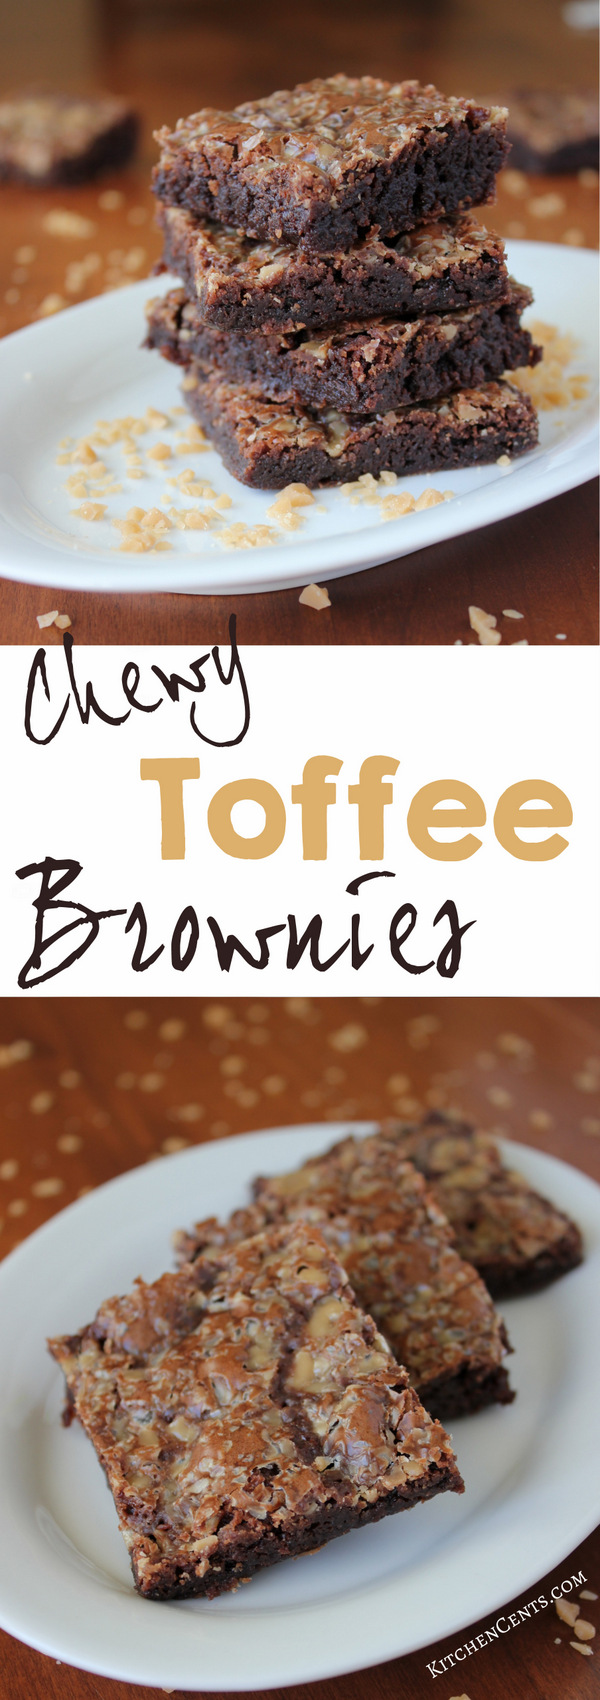 Easy Chewy Toffee Brownies | KitchenCents.com